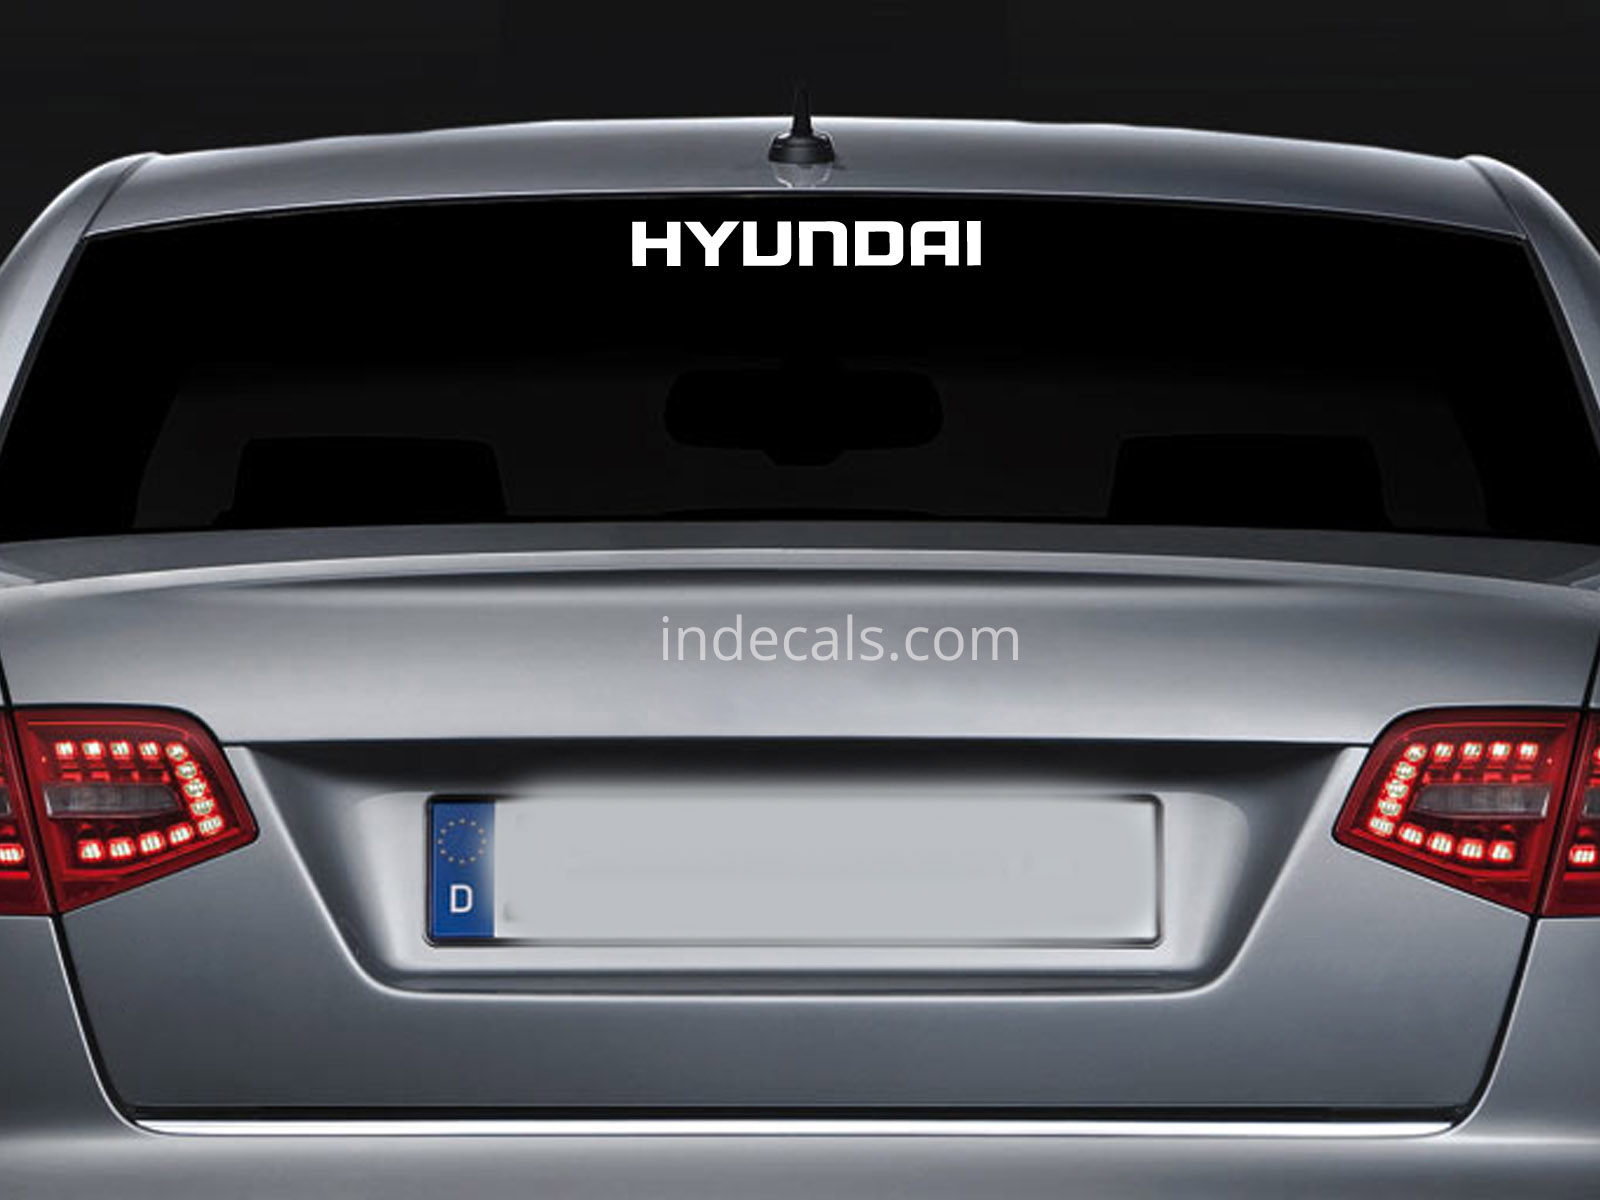 1 x Hyundai Sticker for Windshield or Back Window - White